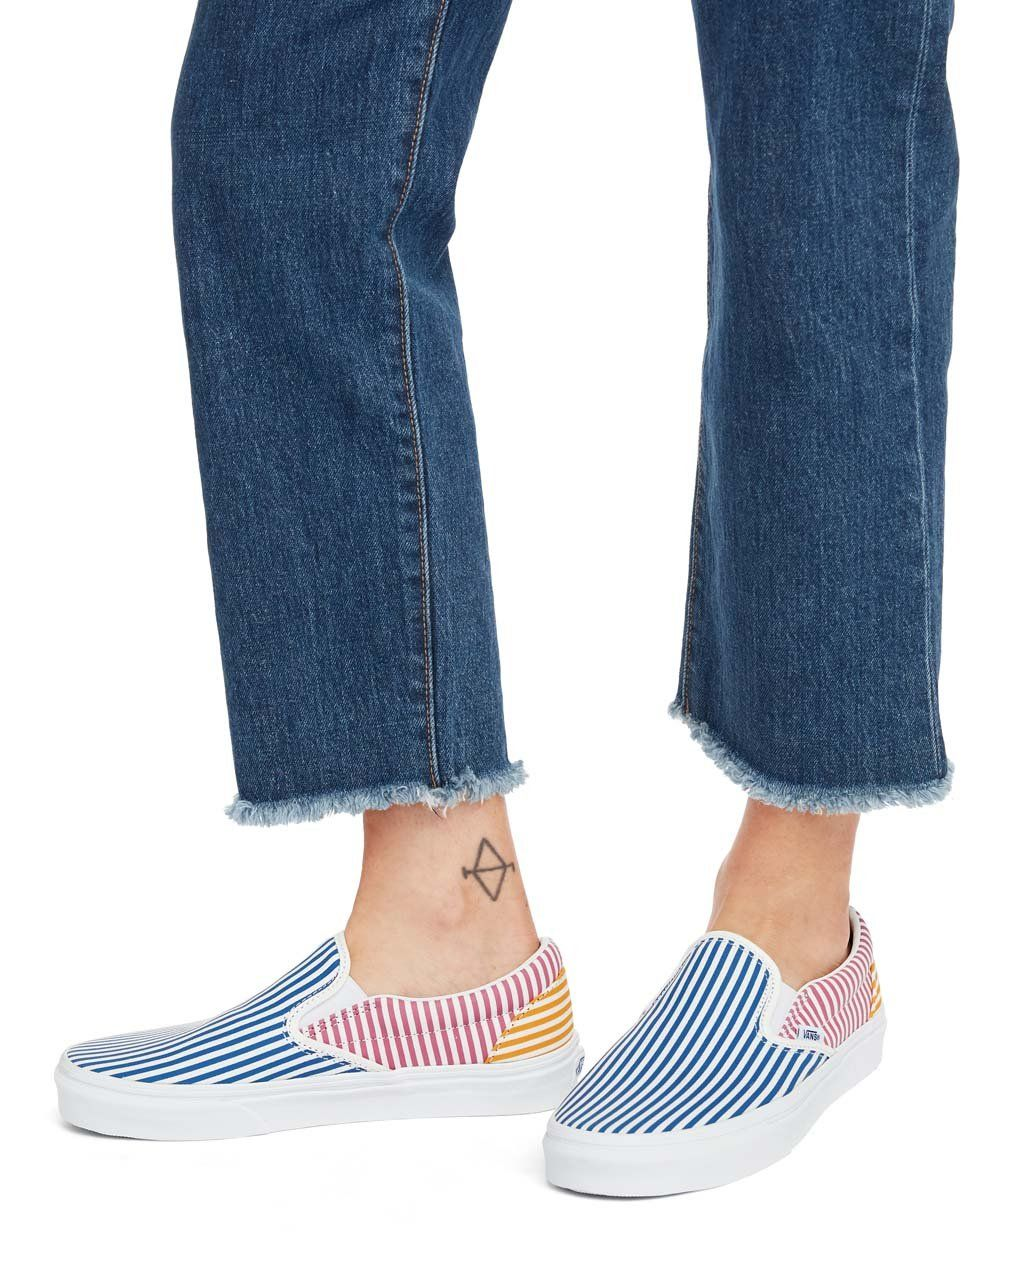 Classic Slip On Deck Club Stripes by vans shoes ban.do